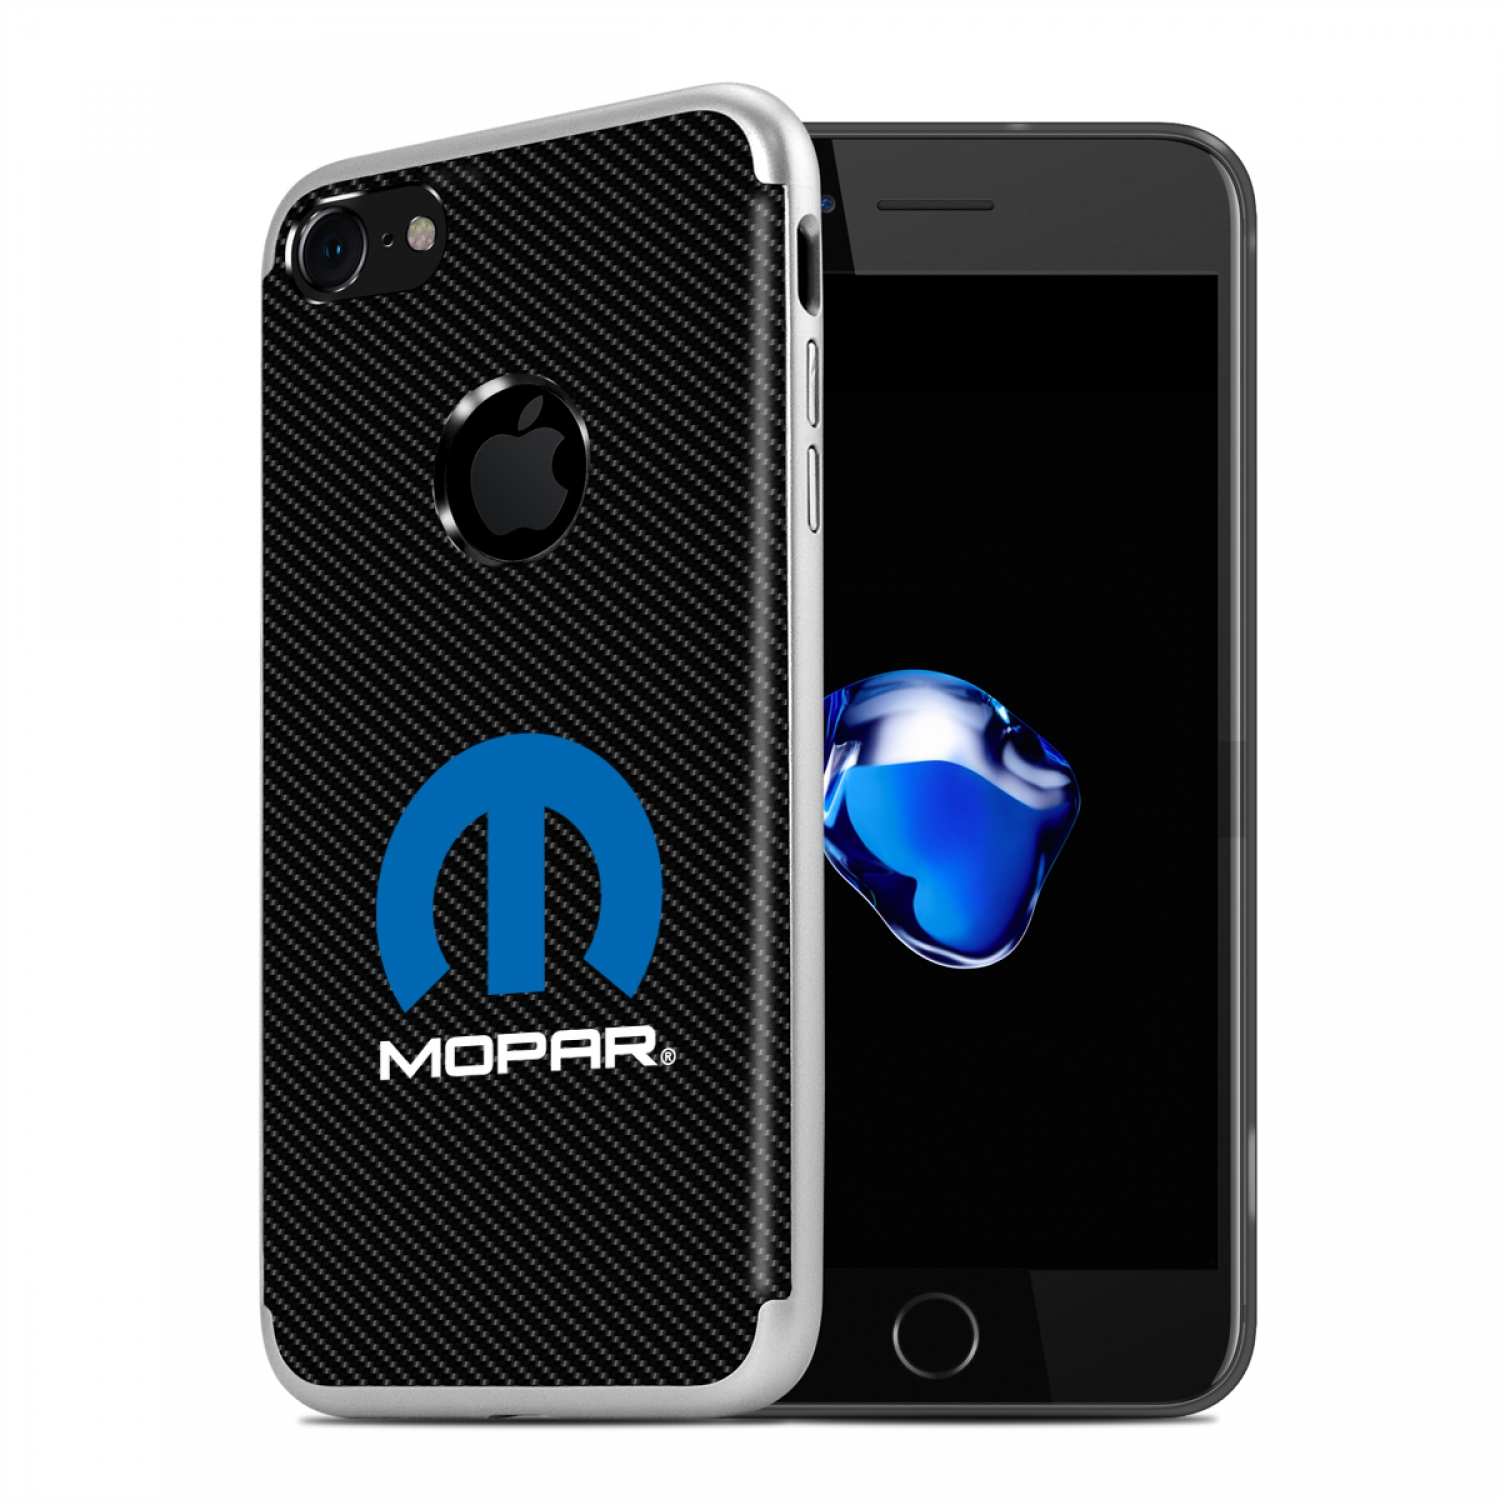 iPhone 7 Case, MOPAR Logo PC+TPU Shockproof Black Carbon Fiber Textures Cell Phone Case